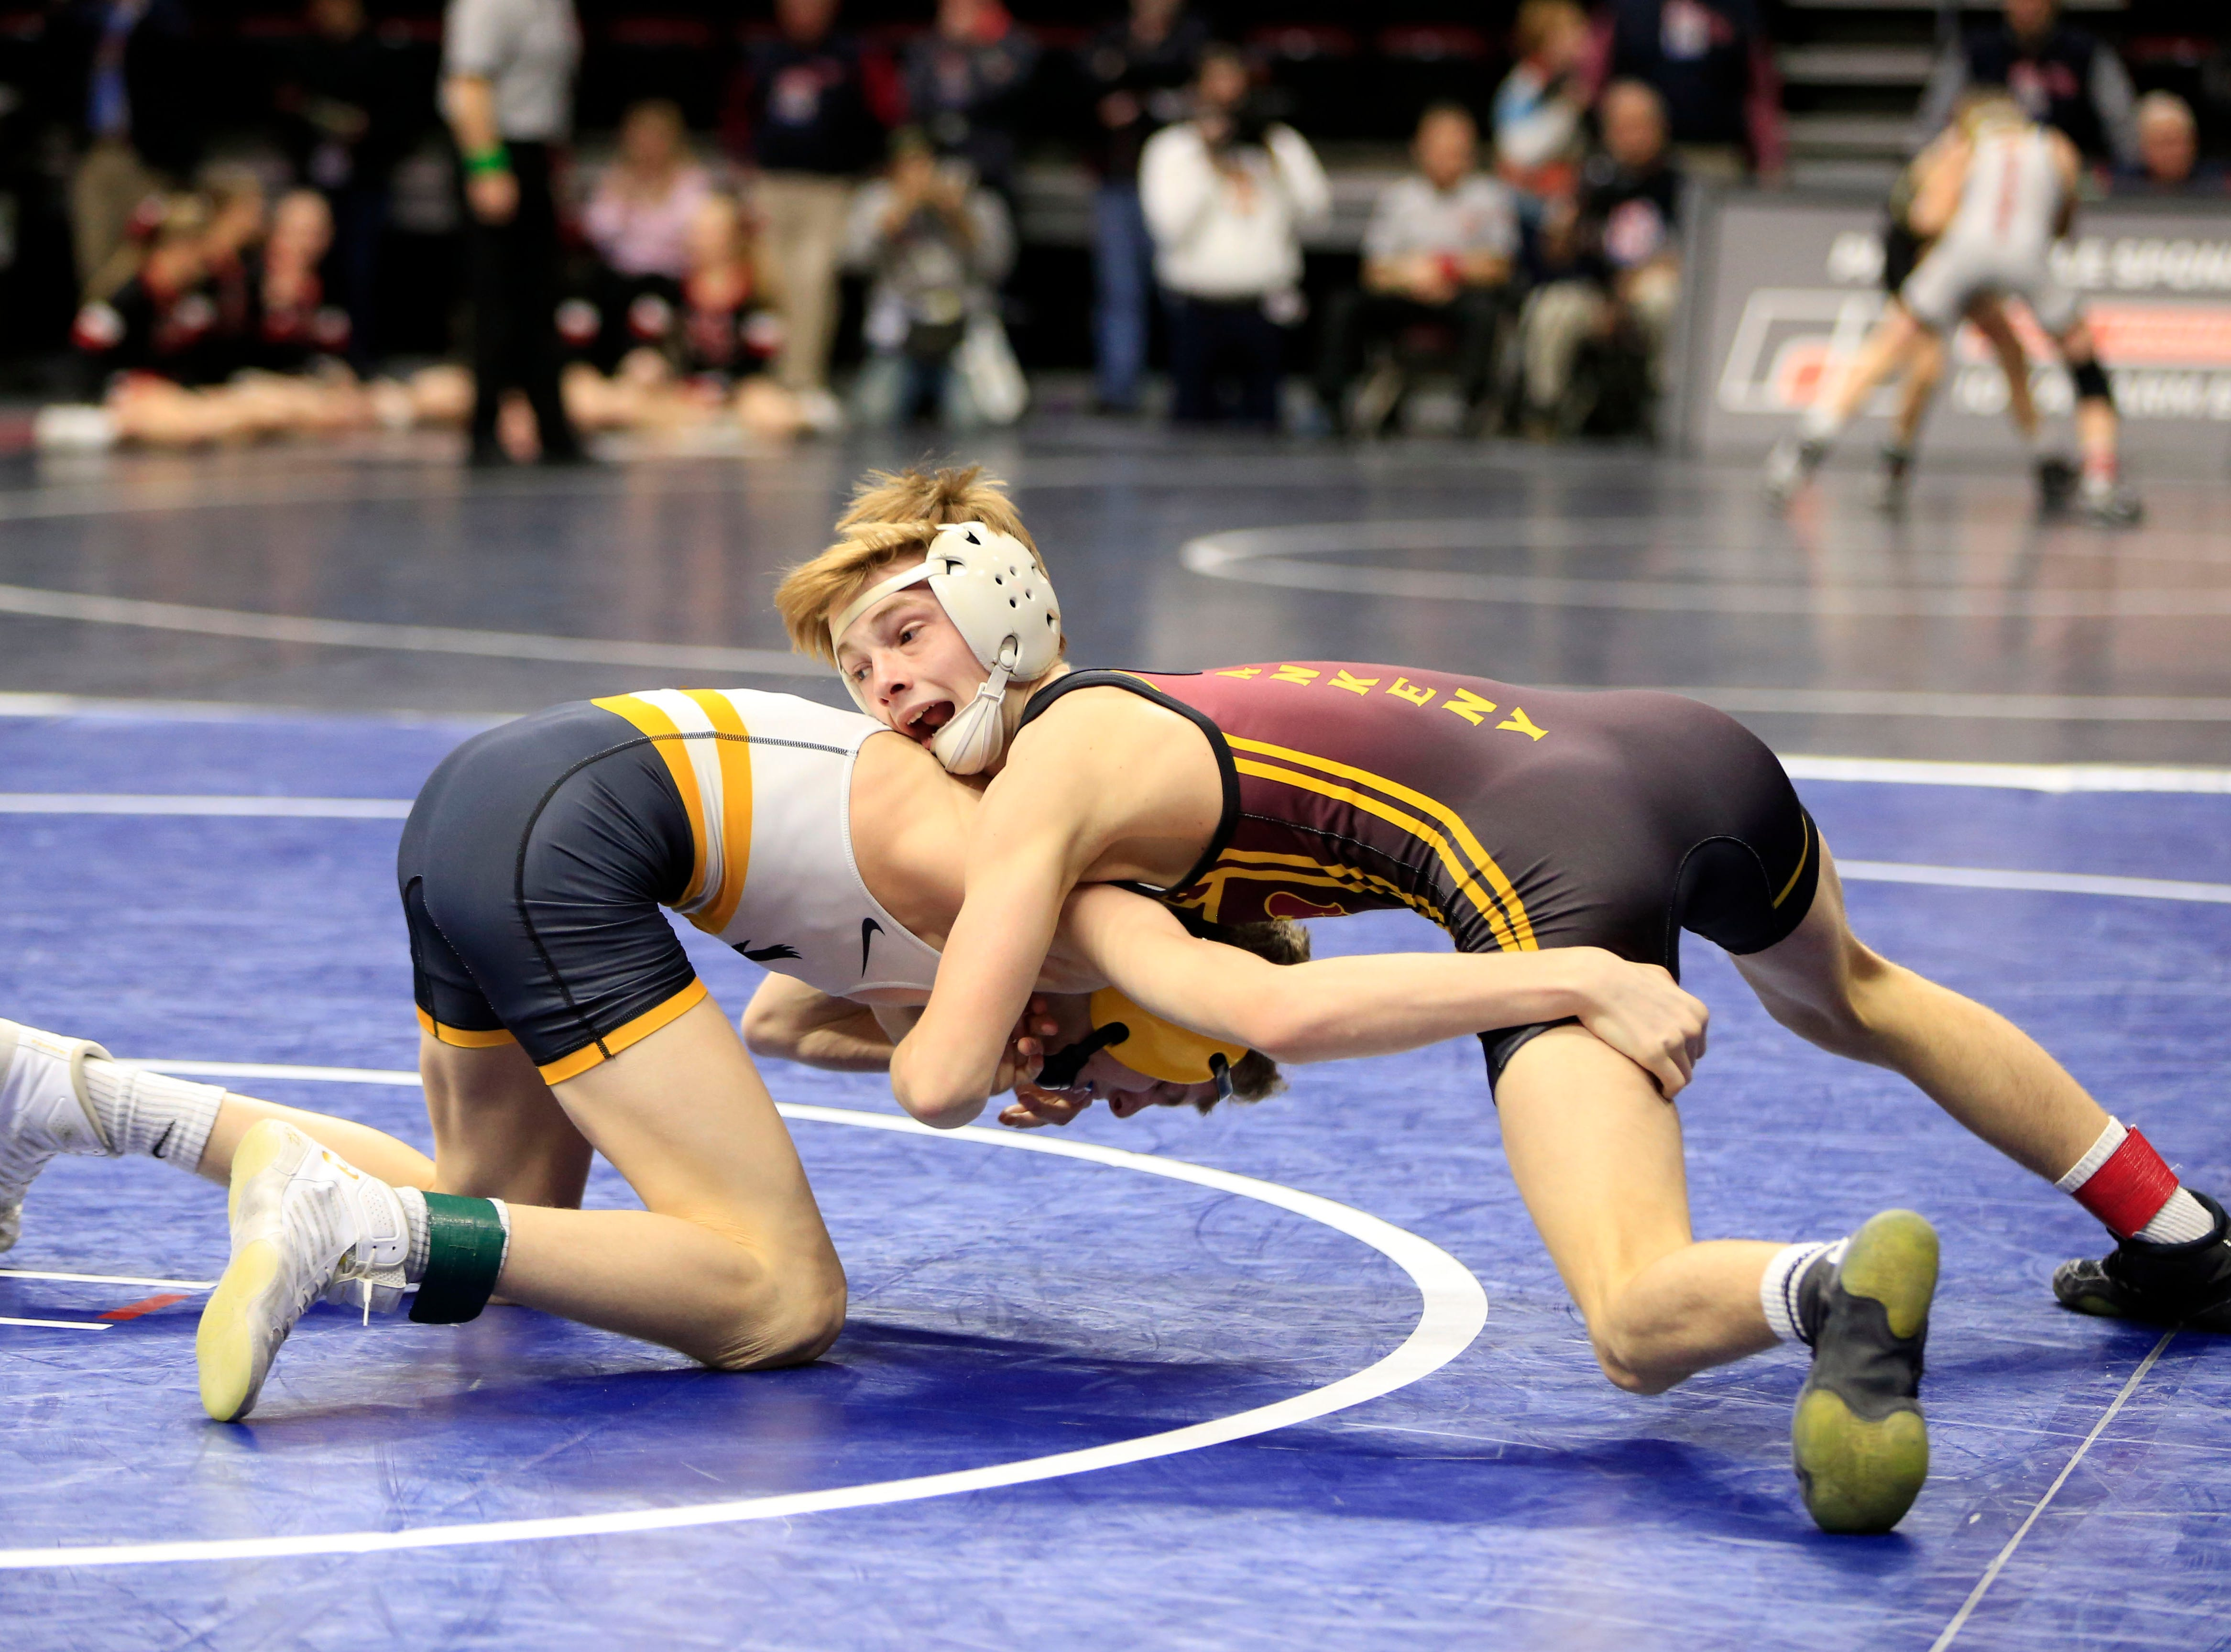 Trever Anderson of Ankeny defeats Aiden Riggins of Waverly-Shell Rock during a 106 Lb 3A semifinal match at the state wrestling tournament Friday, Feb. 15, 2019.